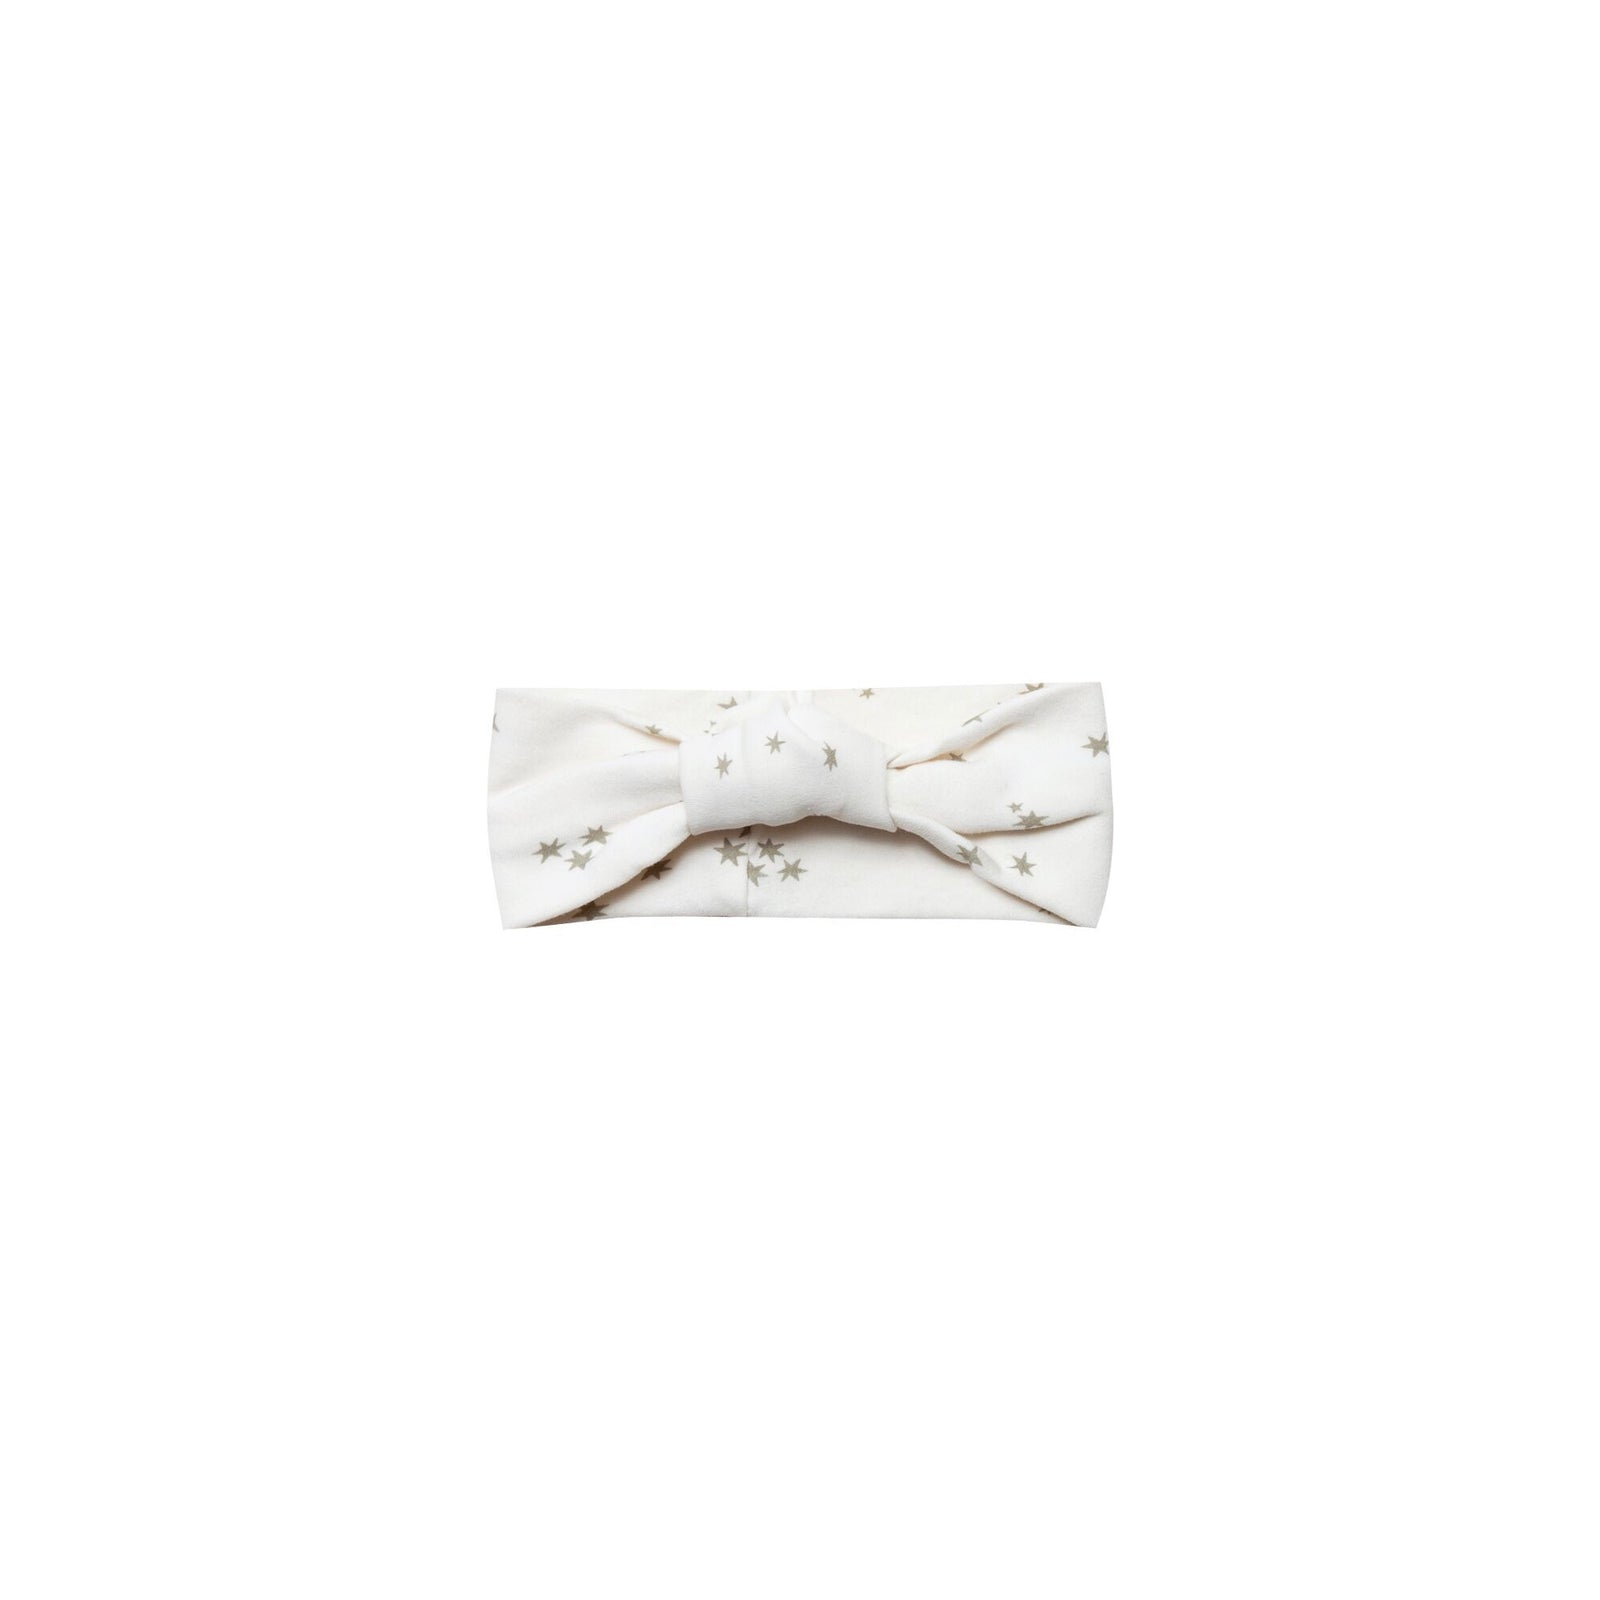 Ivory Baby Turban - Quincy Mae